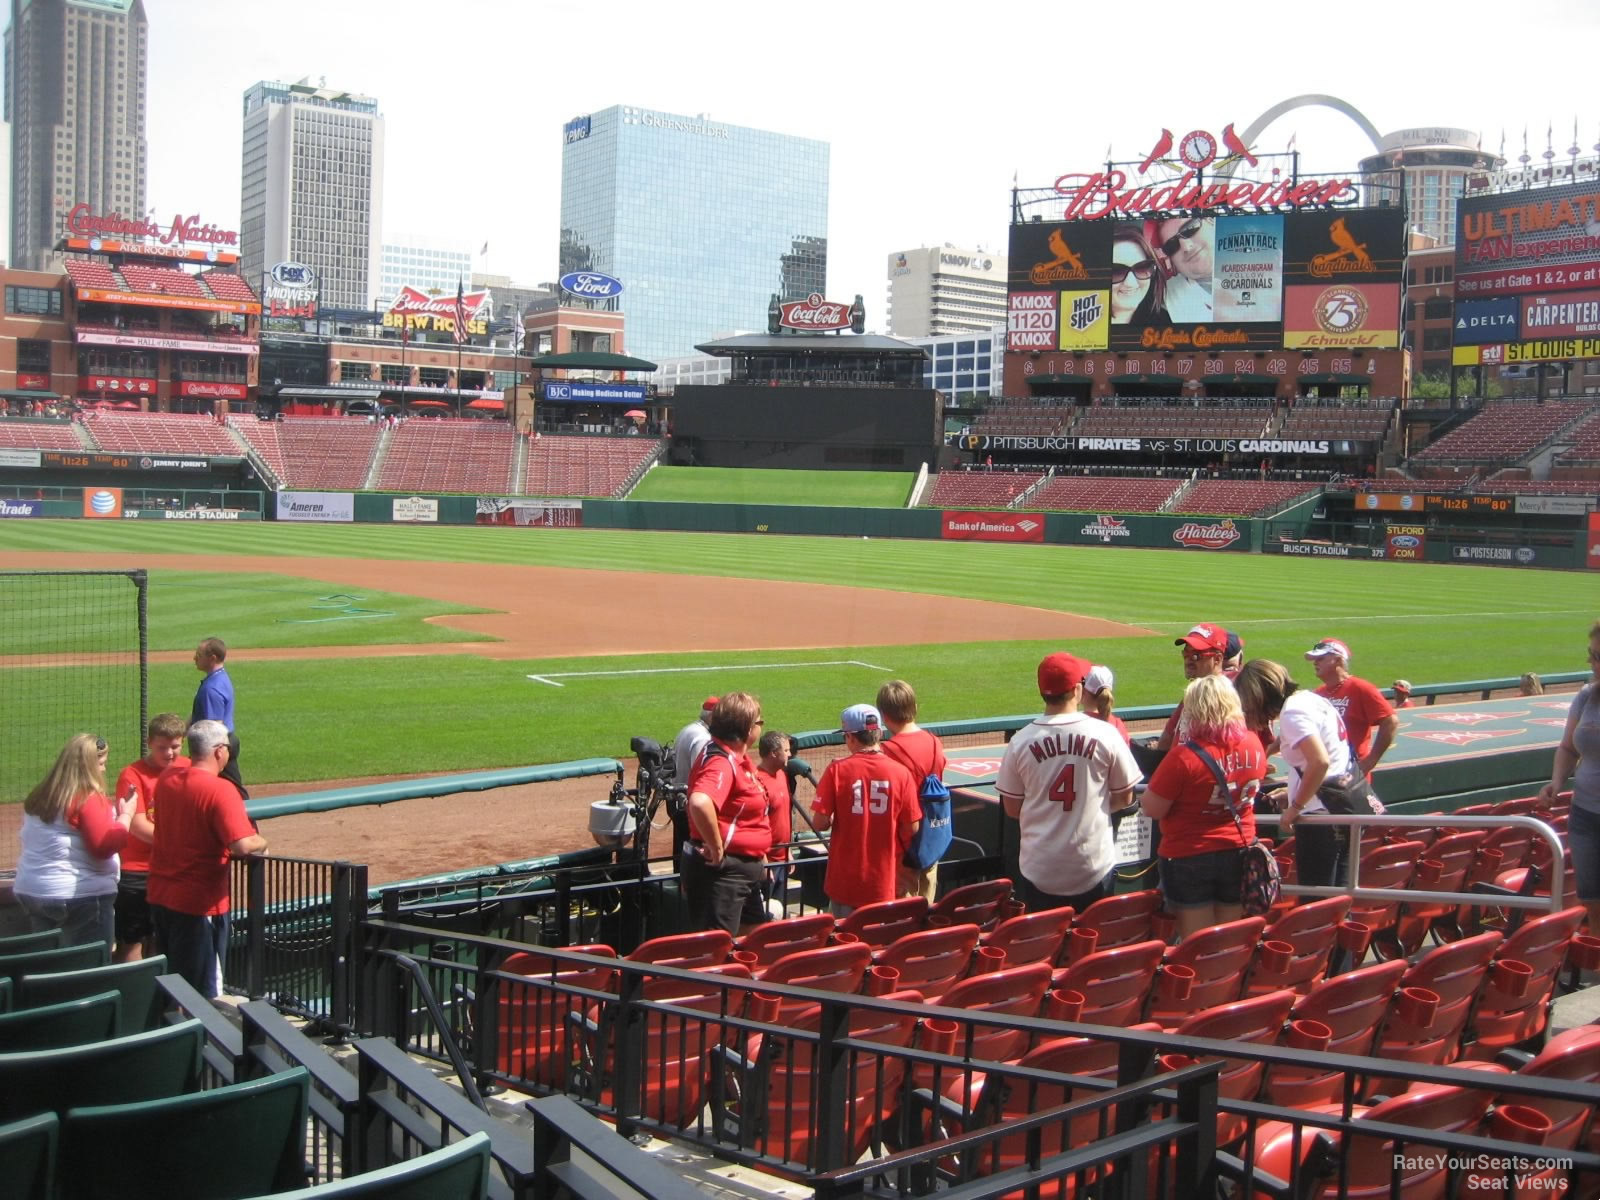 Busch Stadium Cardinals Club 1 - RateYourSeats.com